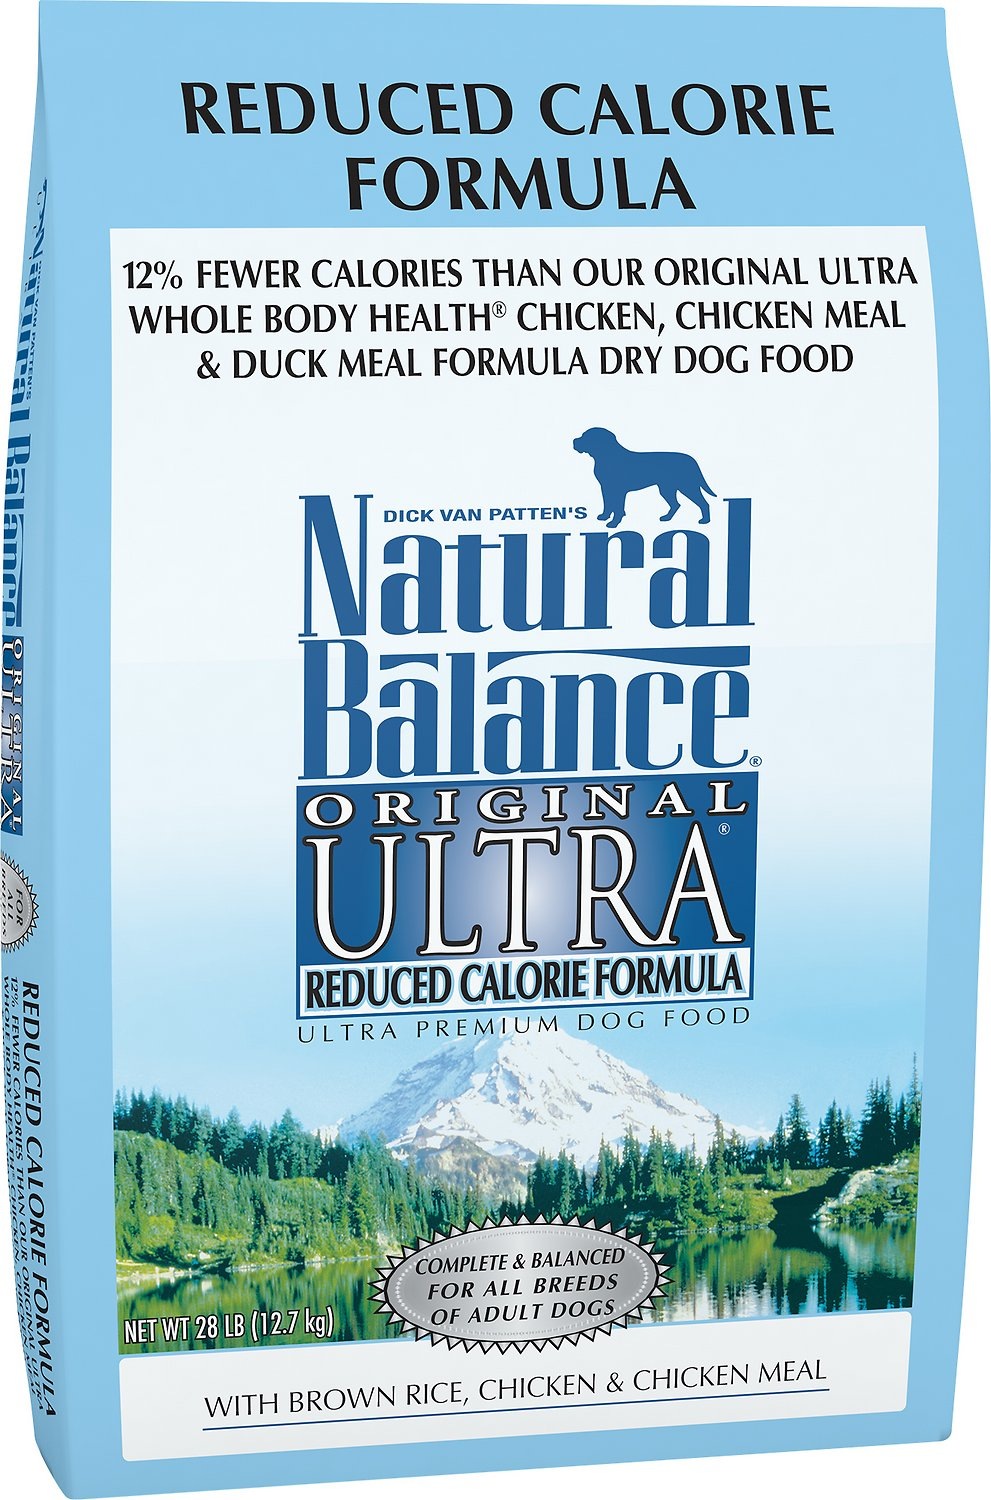 Natural Balance Ultra Reduced Calorie Cat Food Reviews